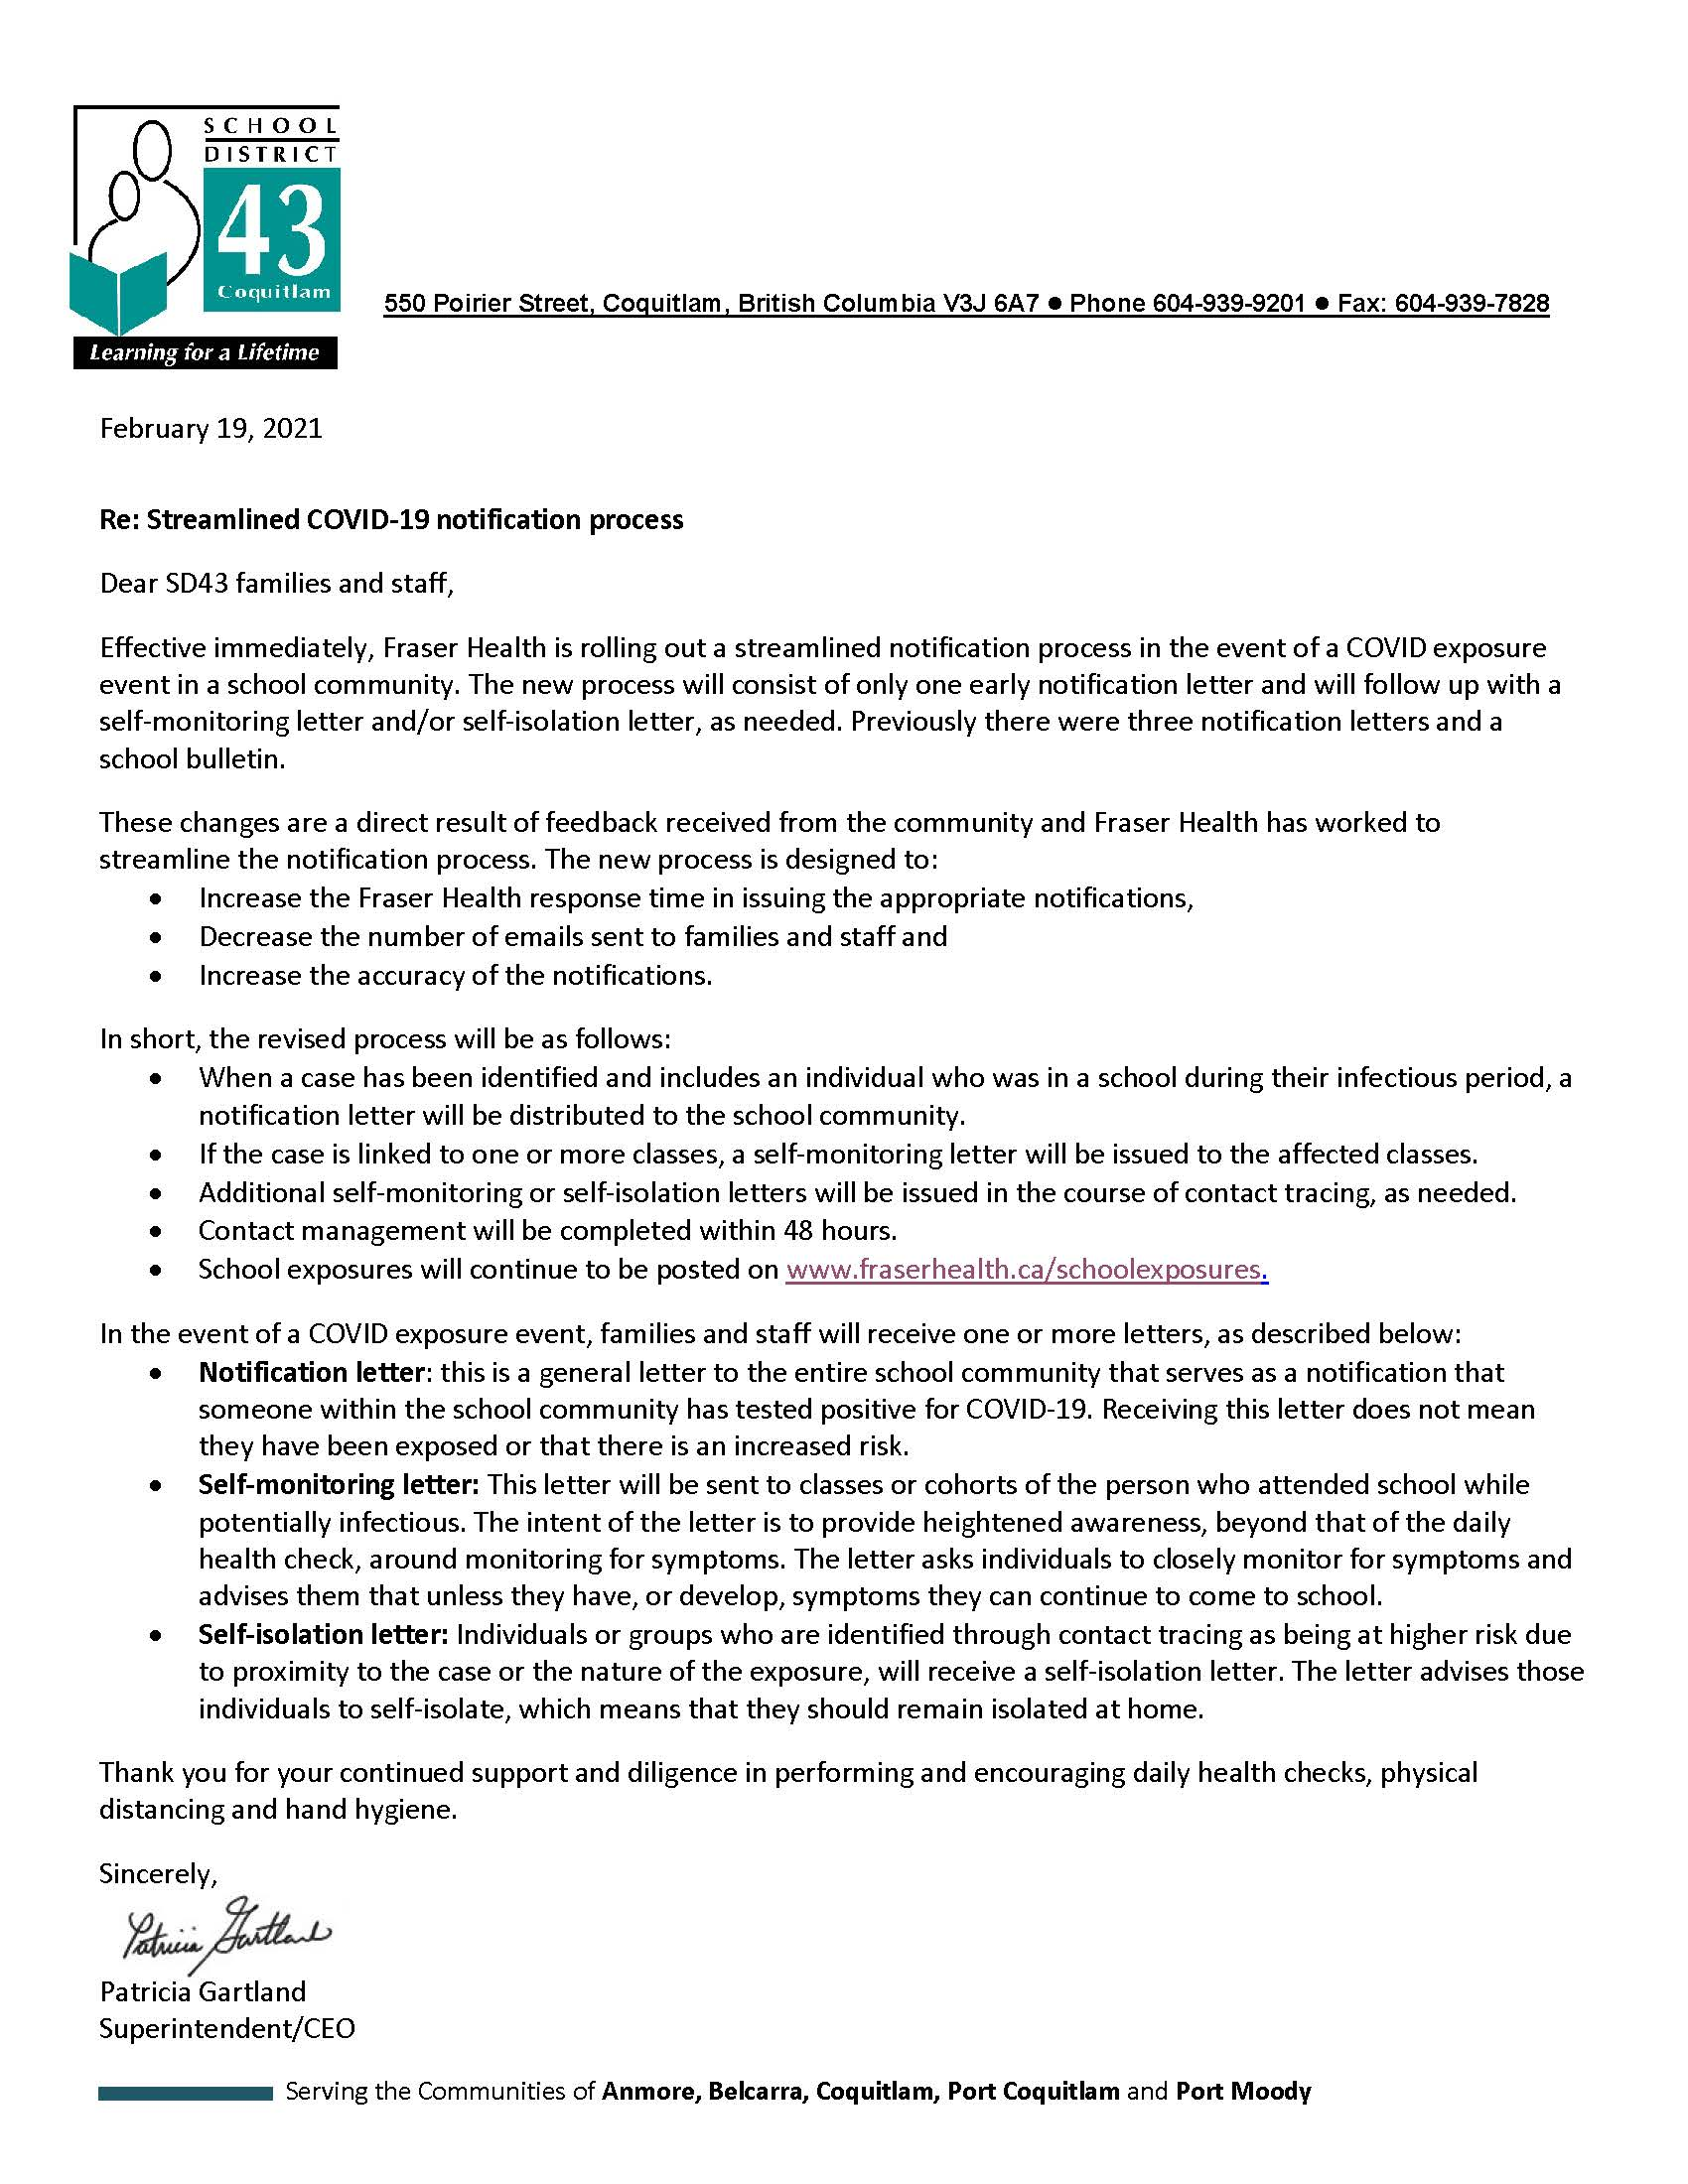 Superintendents letter to families-staff re streamlined COVID notifications 02-19-2021.jpg